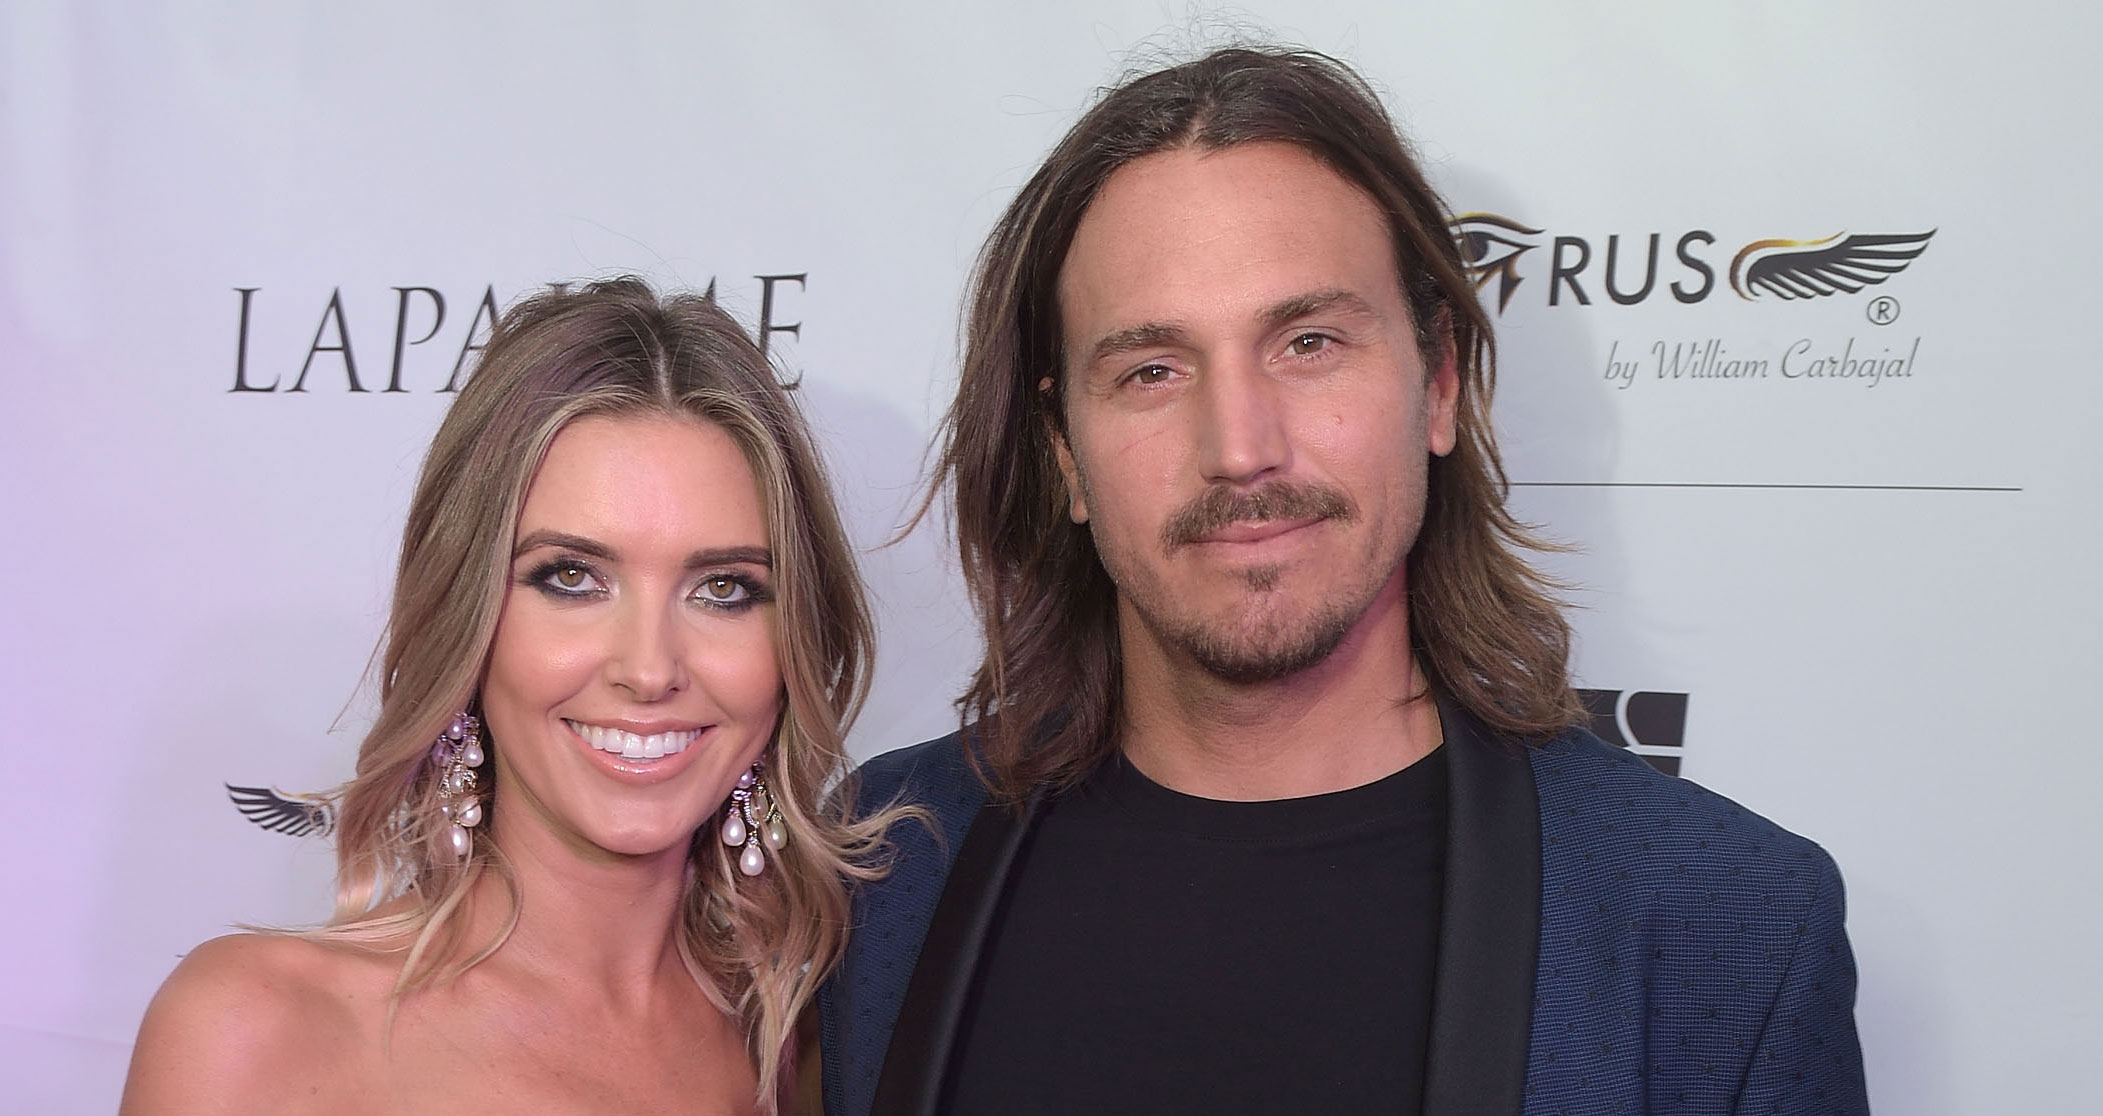 audrina the hills dating Whether it was justin bobby, corey bohan or one of audrina patridge's other suitors, the former hills star always seemed.